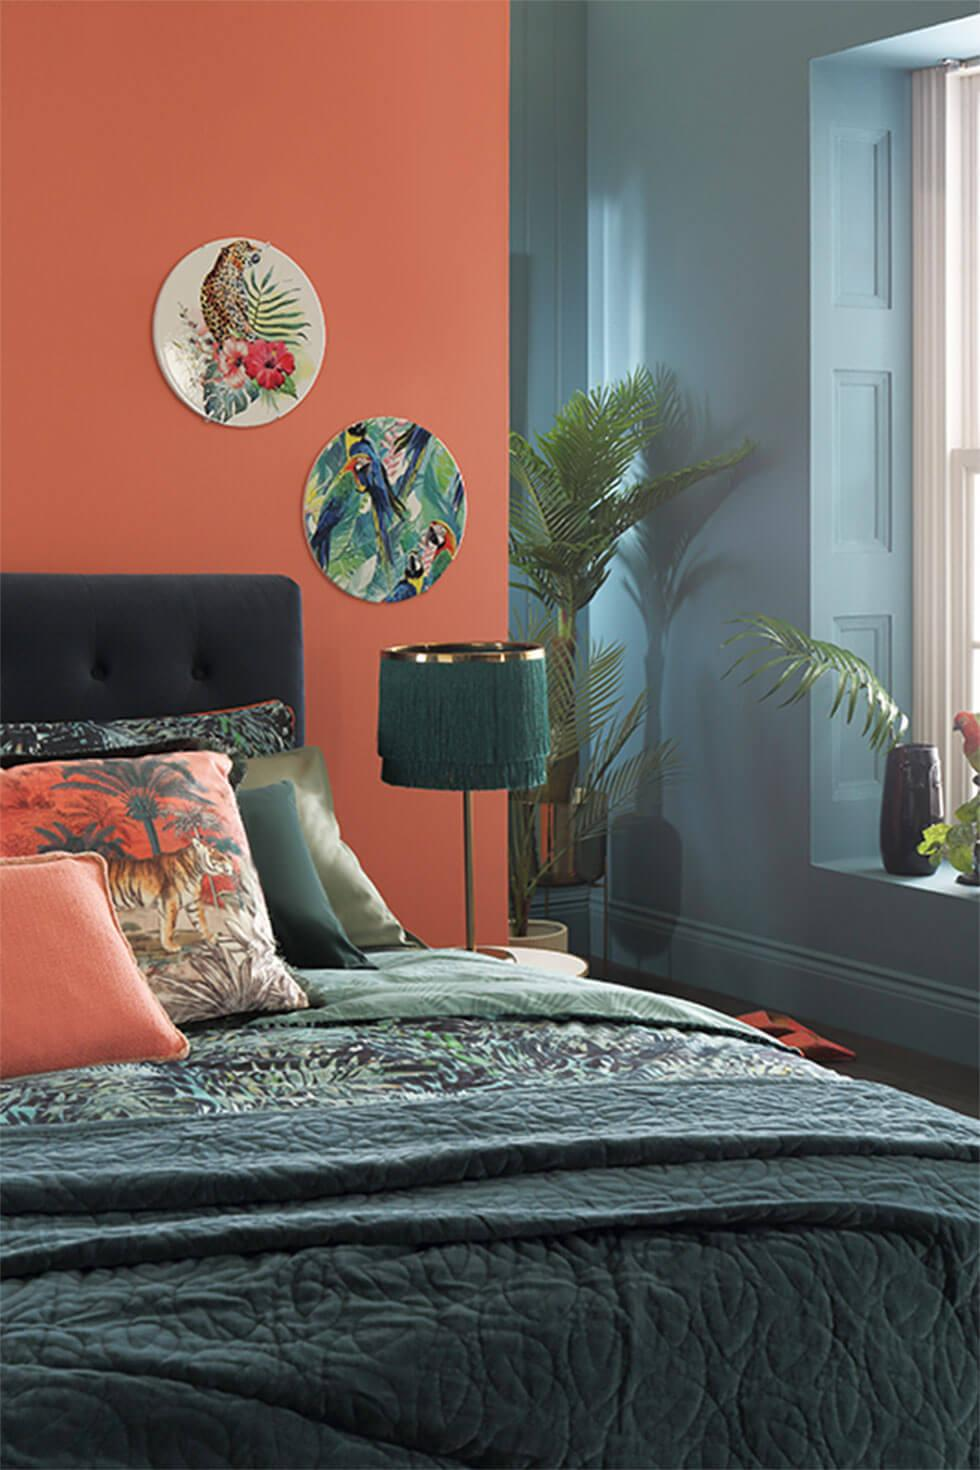 A bedroom with contrasting colour block painted walls in teal and coral.